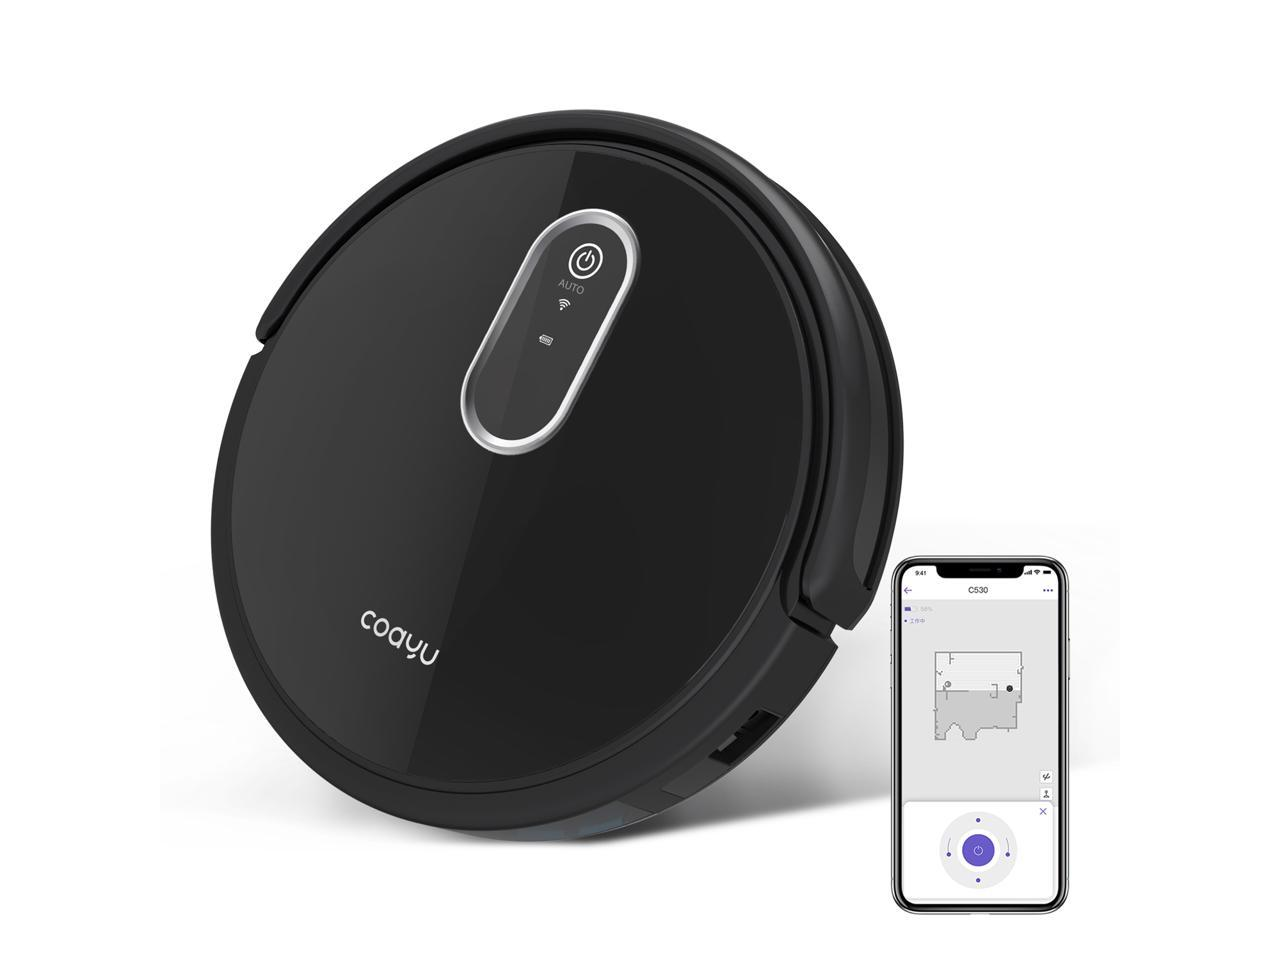 COAYU C530 Self-Charge Robot Vacuum Cleaner, Super Quiet with Max Suction